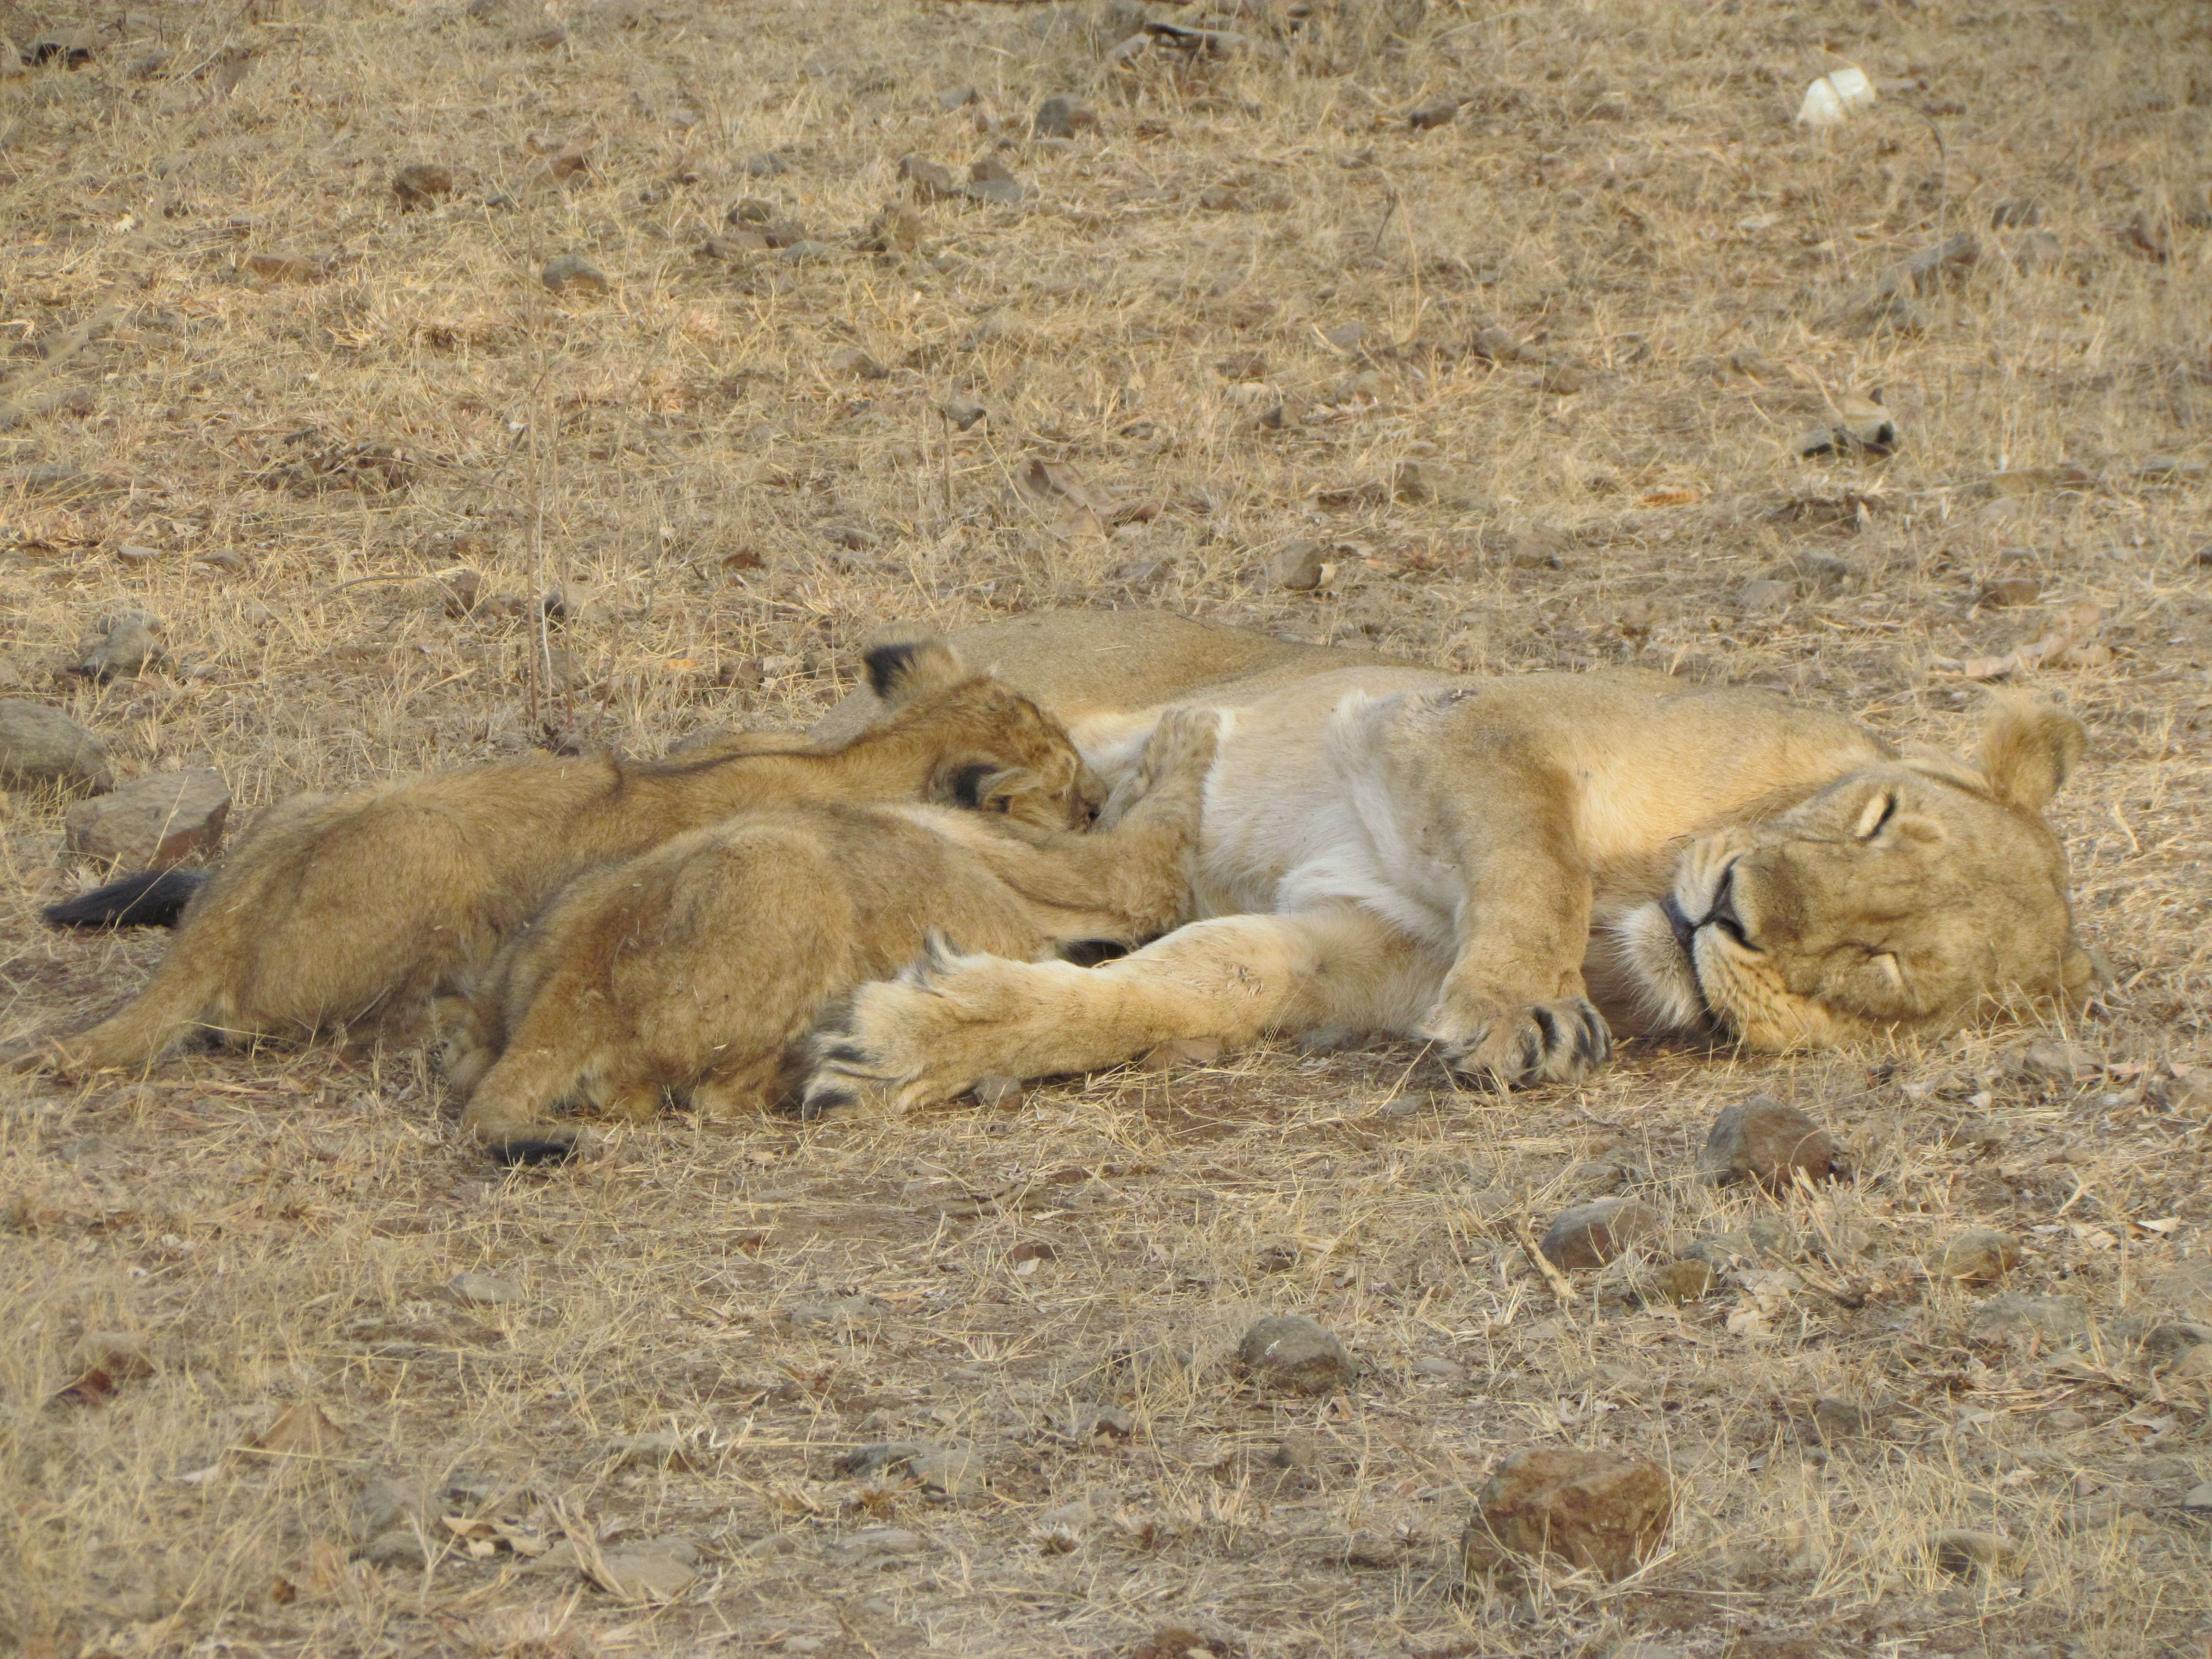 Asiatic Lioness with her Cubs at Sasan Gir National Park in Sasan, Gujarat, India. Sasan Gir National Park can be reached from Ahmedabad or Rajkot Cities by direct Flights from Mumbai and Trains from Mumbai, Delhi etc.